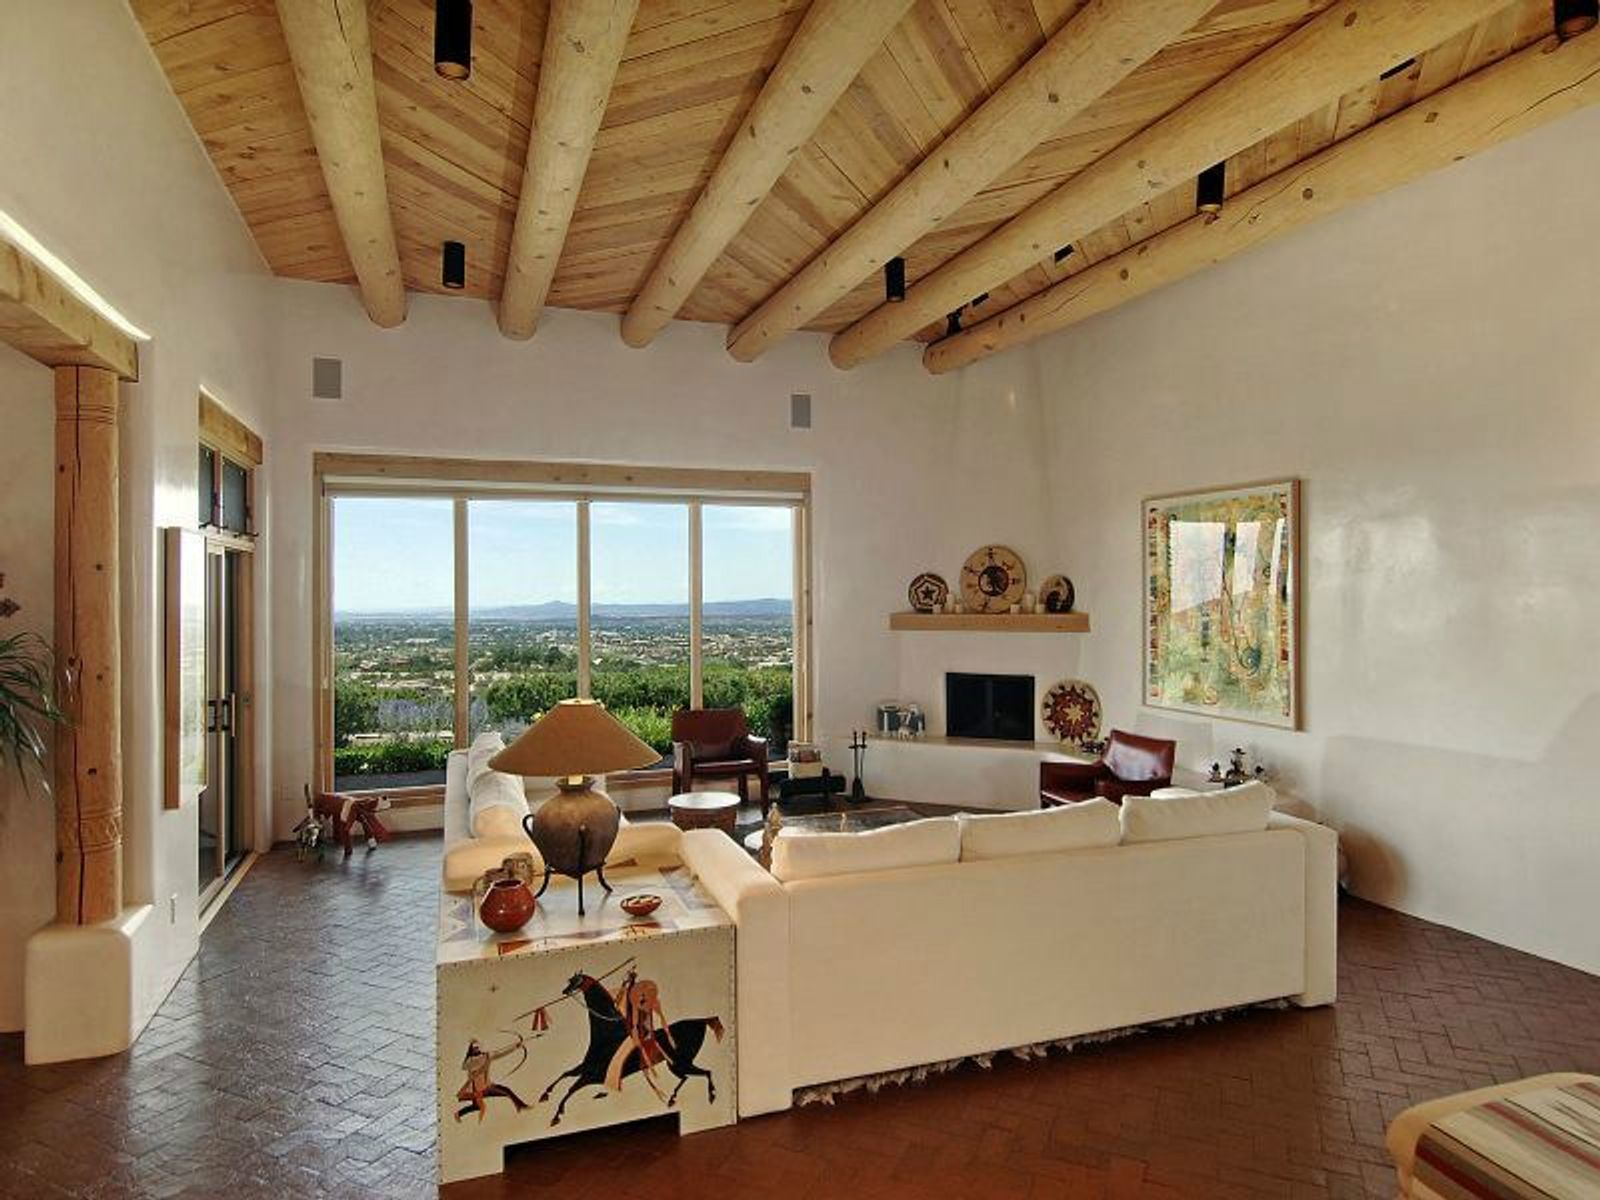 1303 Hummingbird Court, Santa Fe NM Single Family Home - Santa Fe Real Estate